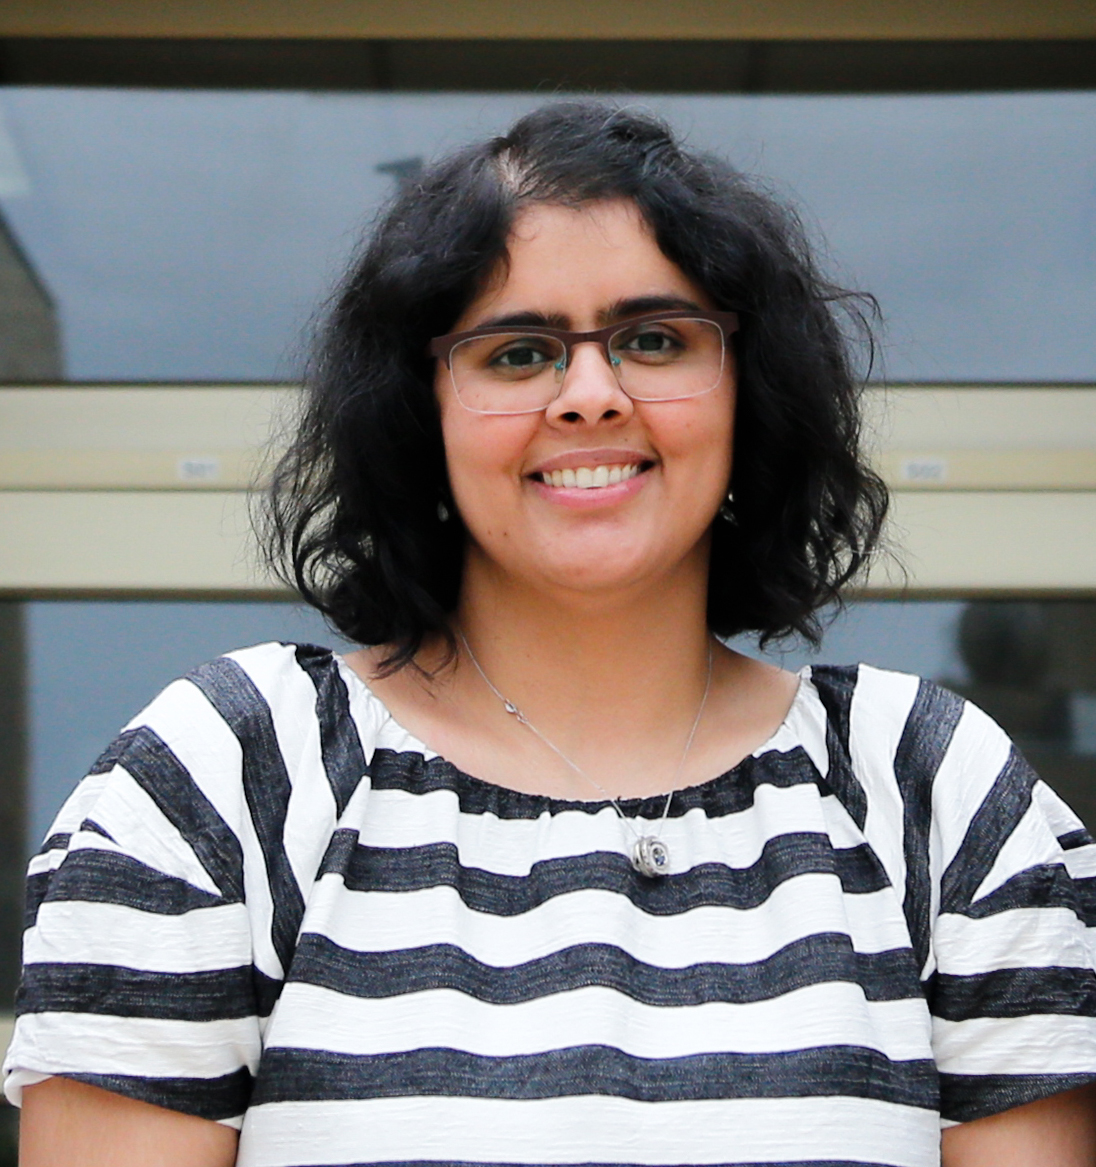 Mrinalini Hoon smiling into the camera wearing a striped shirt.